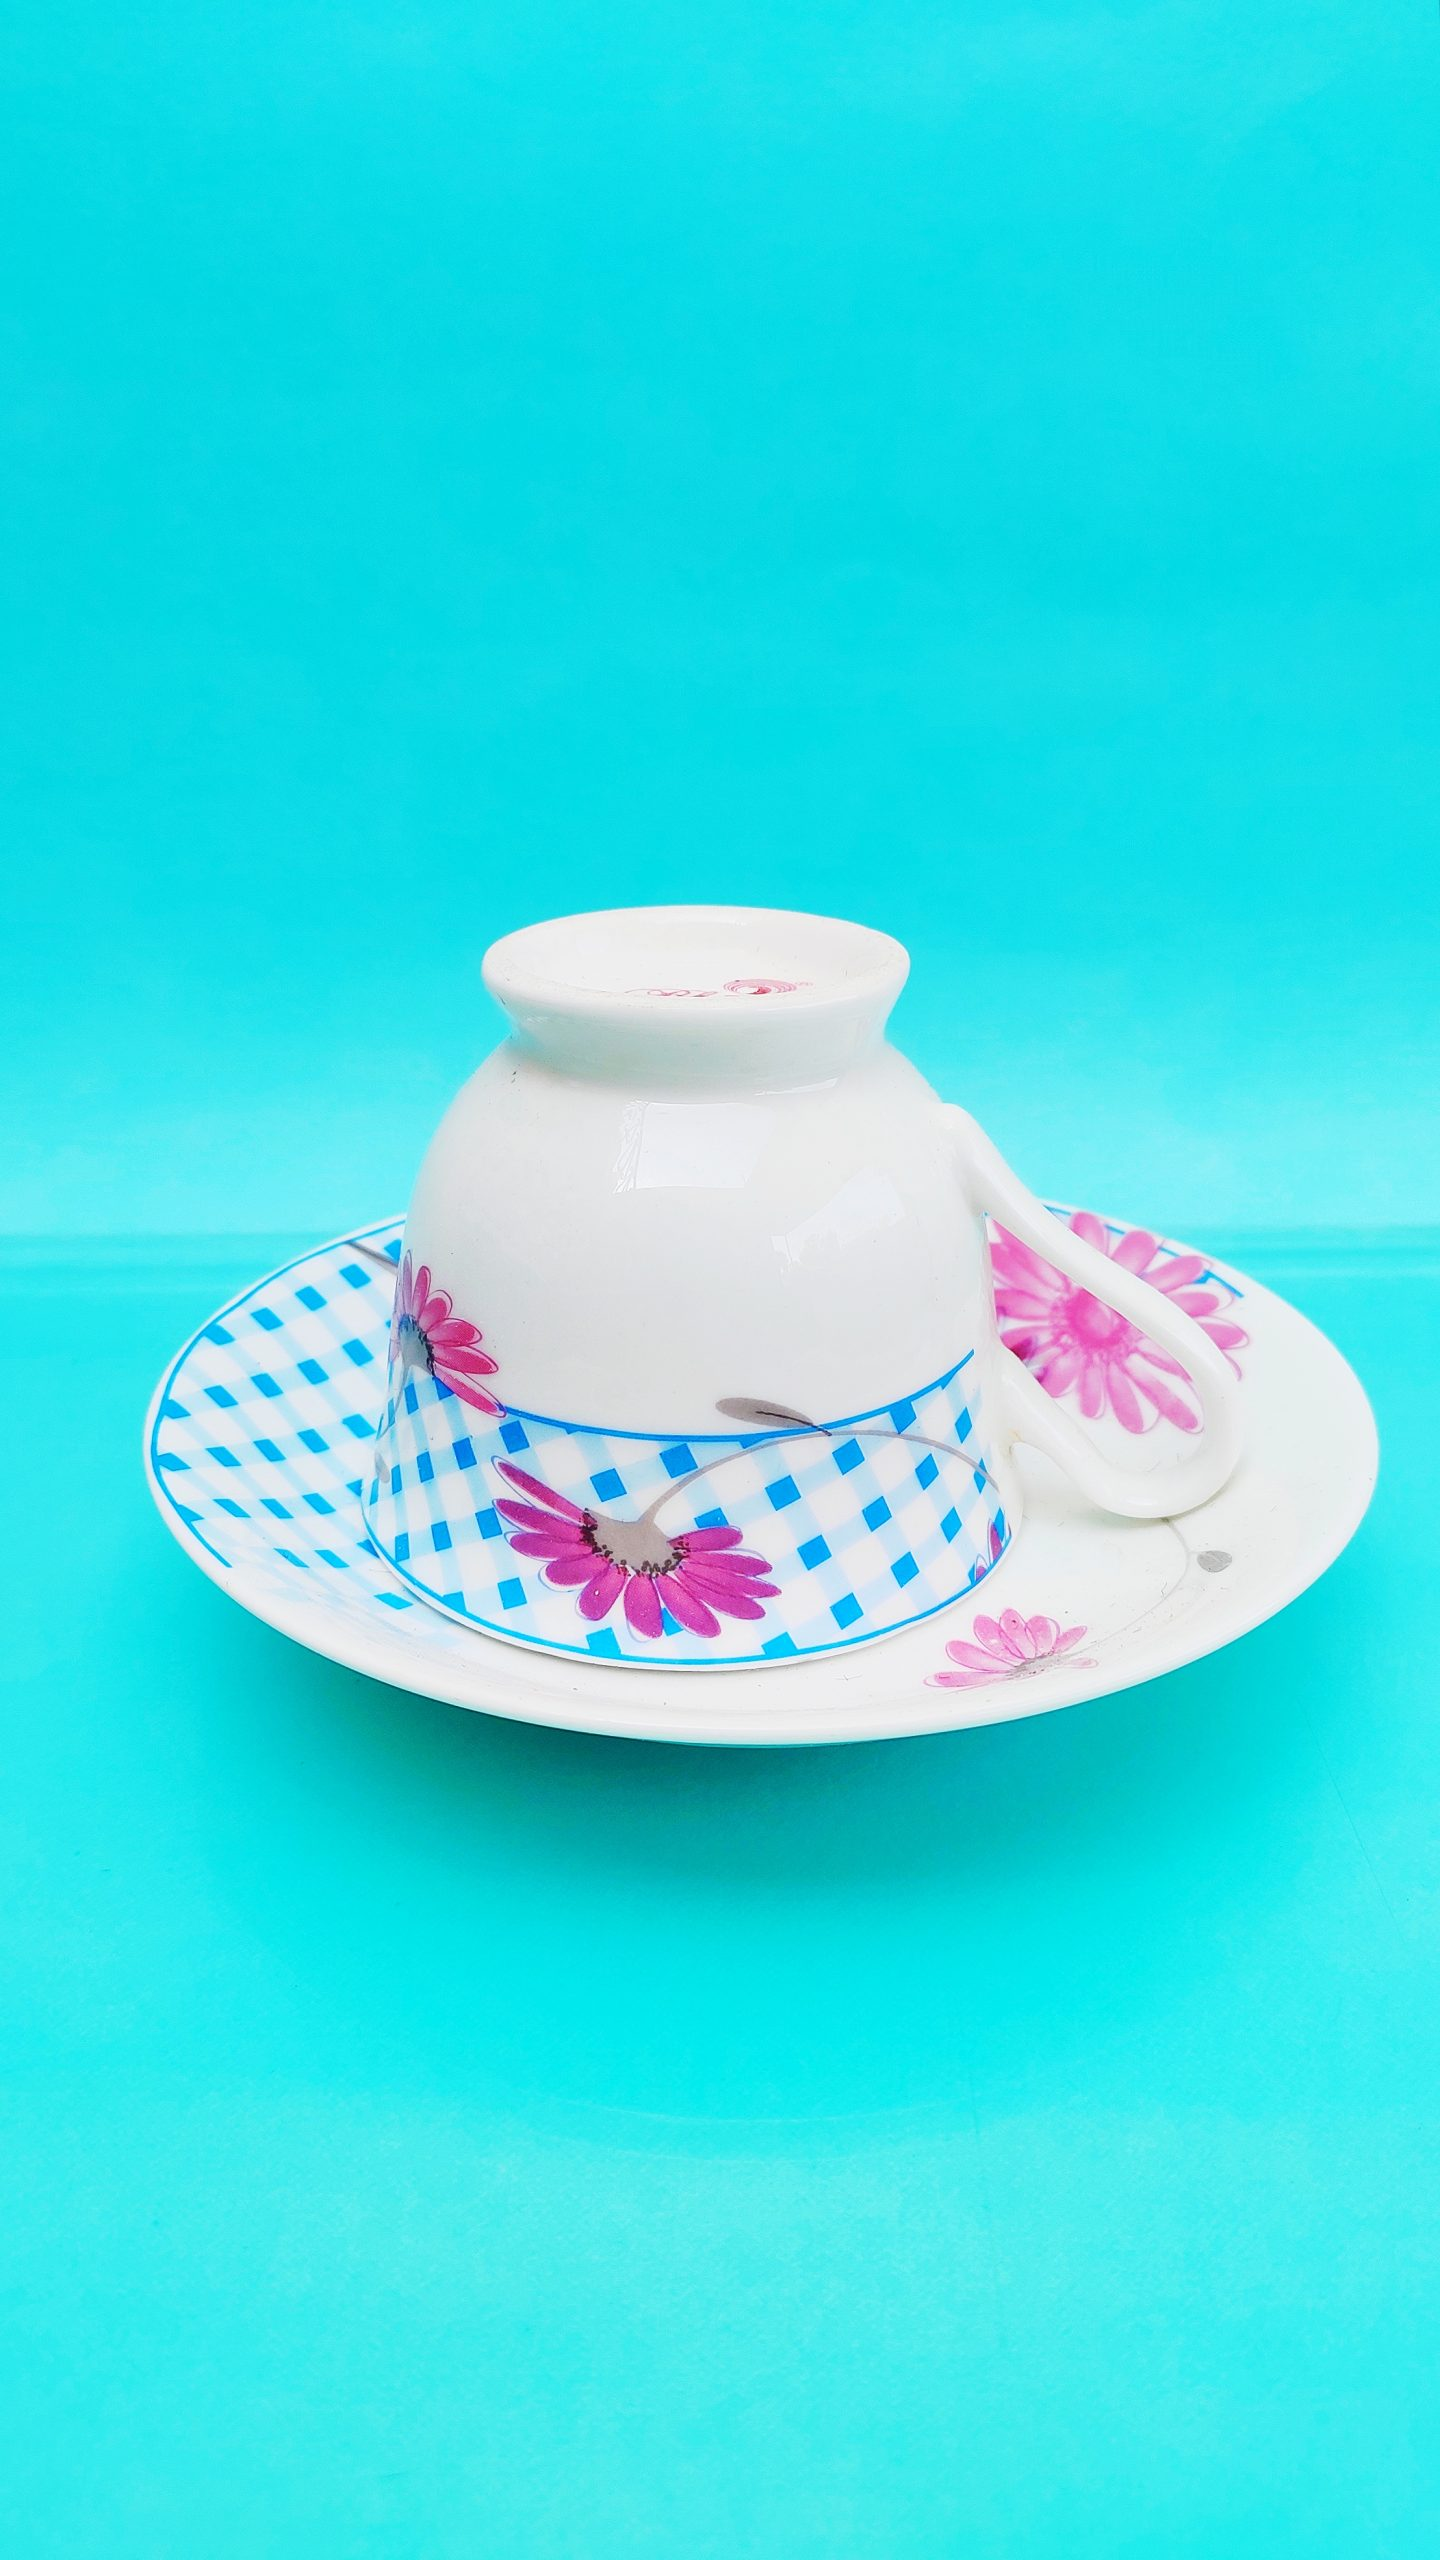 Teacup with plate on bright blue background